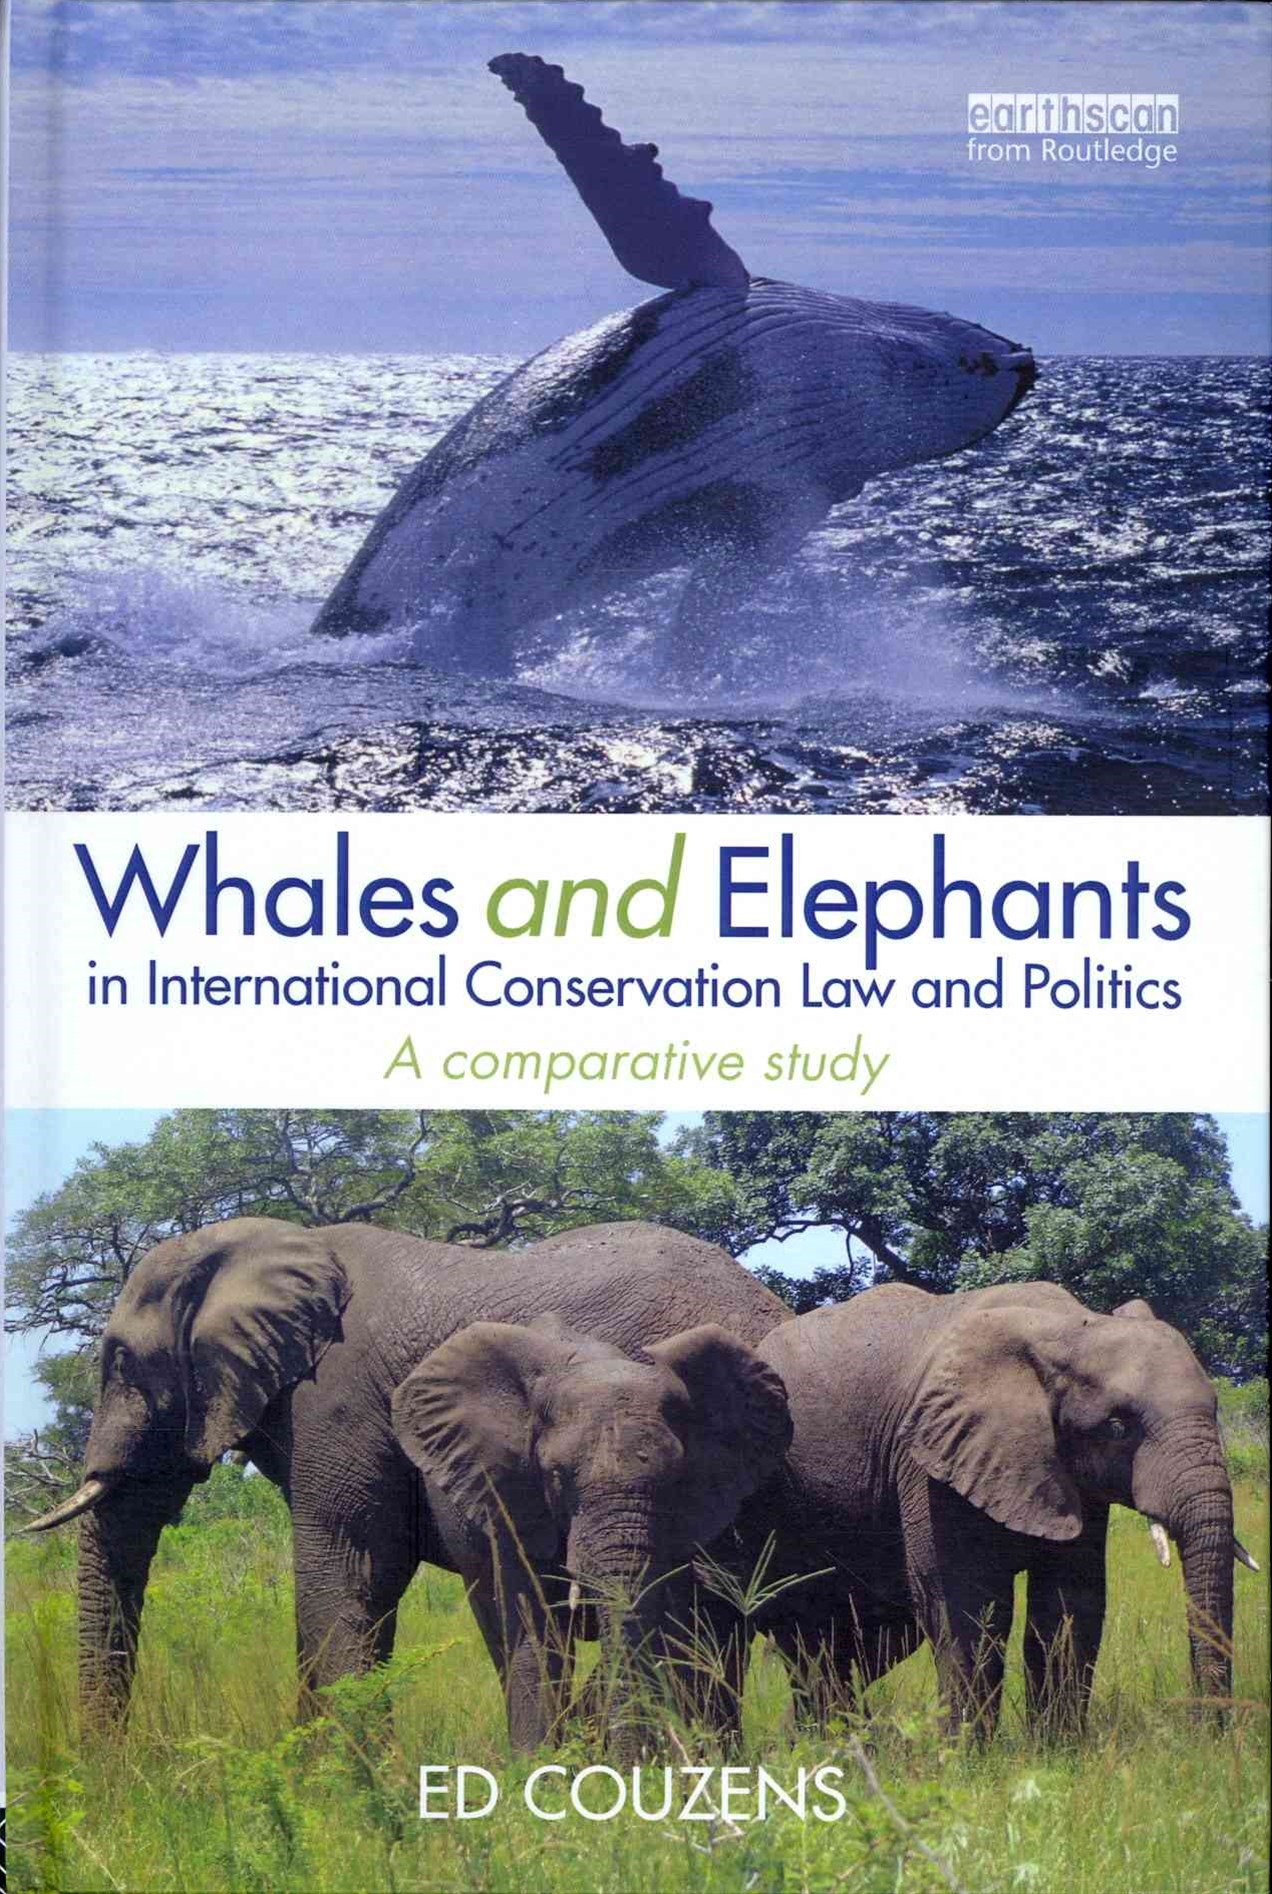 Whales and Elephants in International Conservation Law and Politics